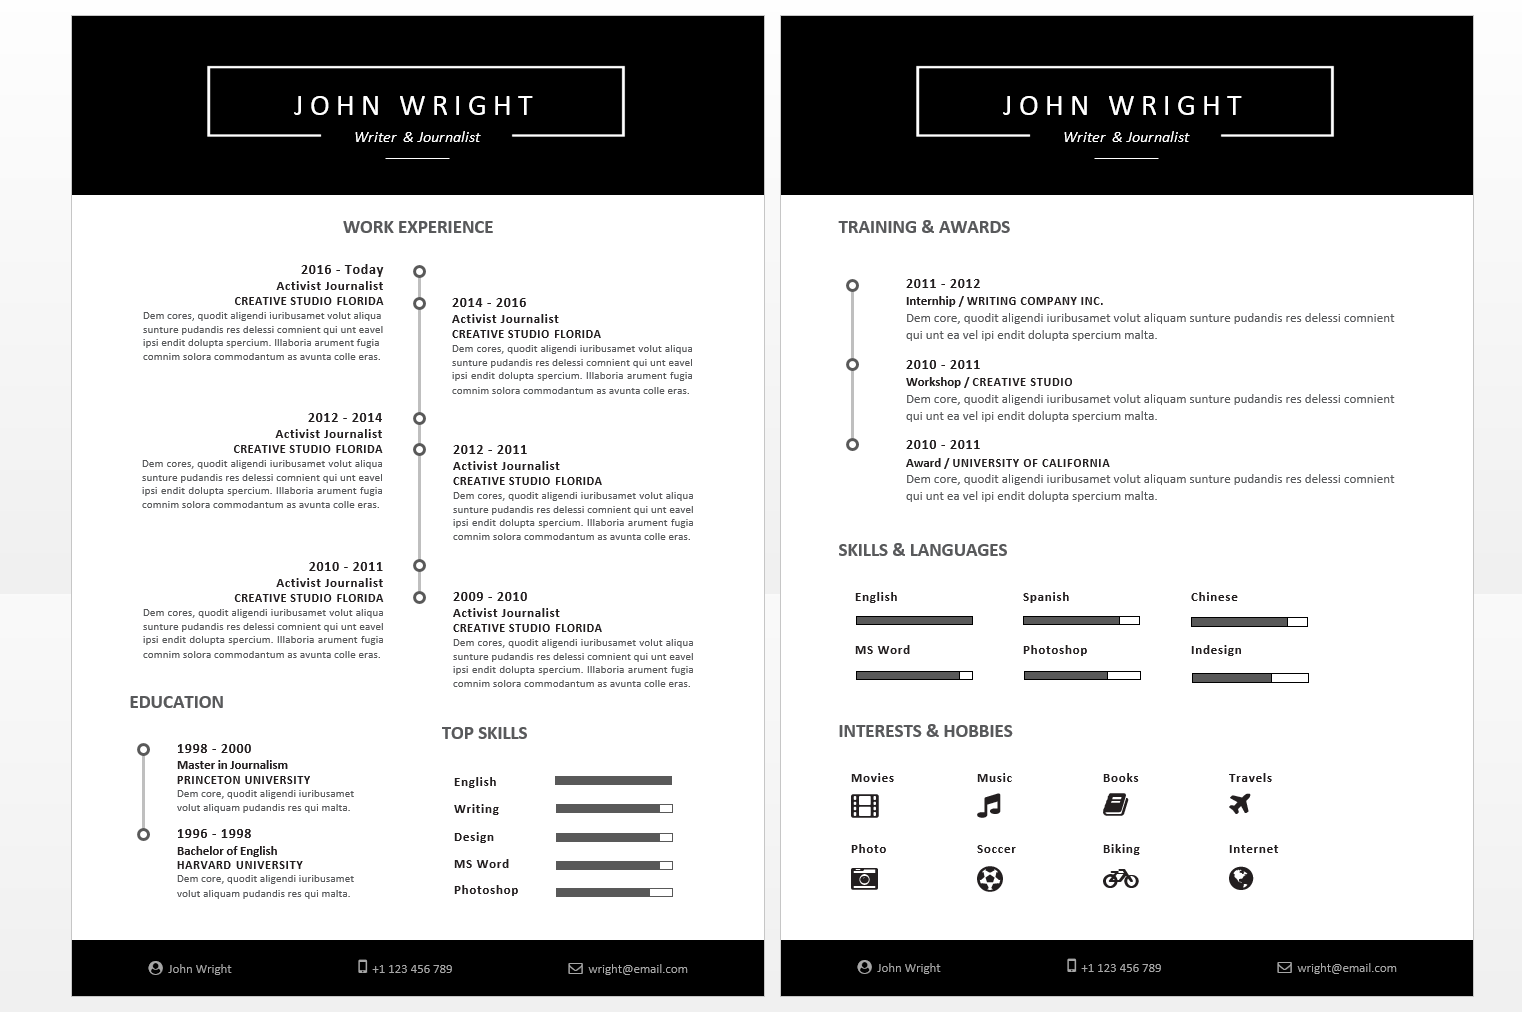 Microsoft Office Resumes  John Wright Resume Template Timeline